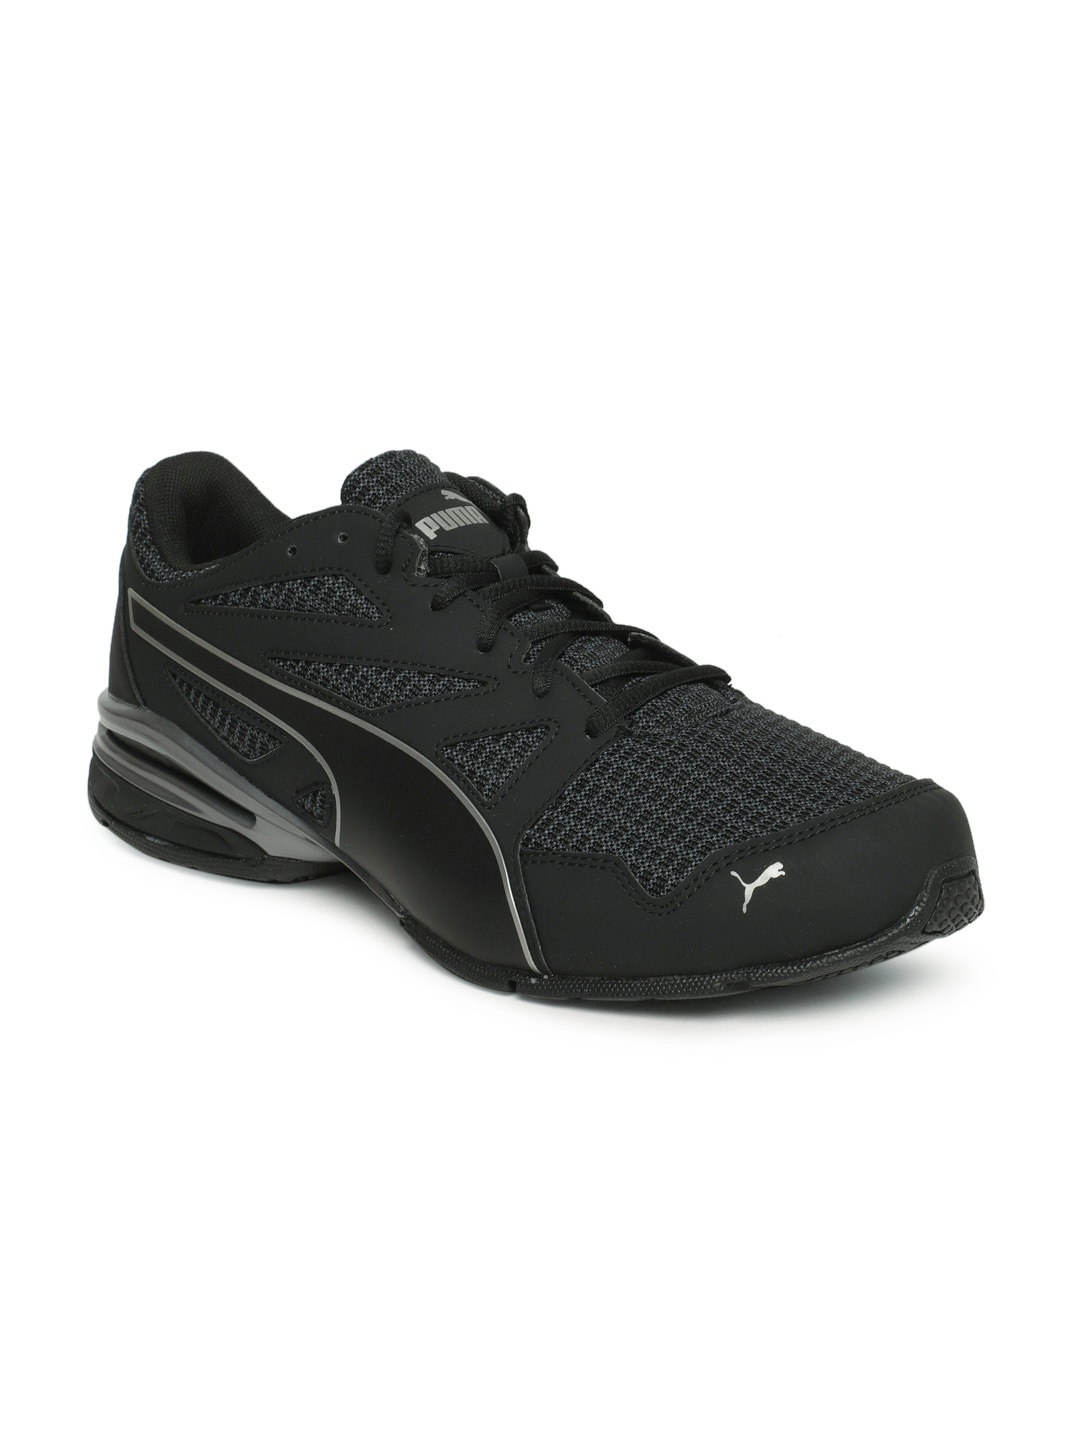 908ab9b140cef7 Sports Shoes for Men - Buy Men Sports Shoes Online in India - Myntra